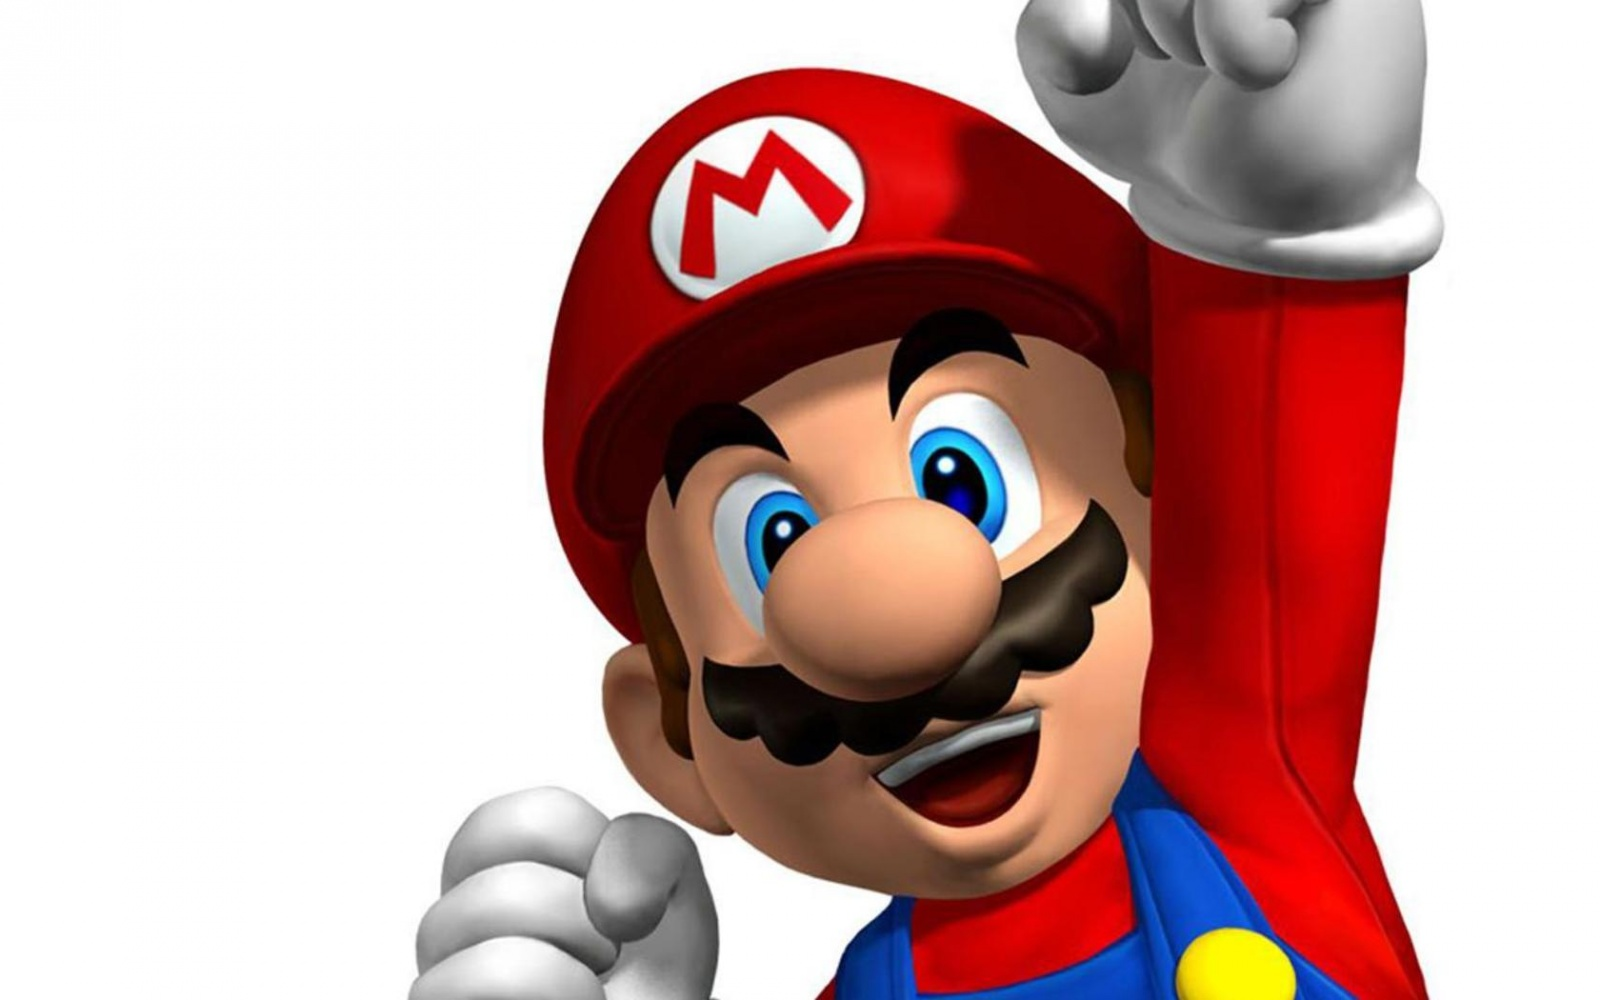 nintendos-first-smartphone-game-will-be-revealed-tomorrow-image-cultofandroidcomwp-contentuploads201510Wallpaper_mariobros_02_1680x1050-jpg